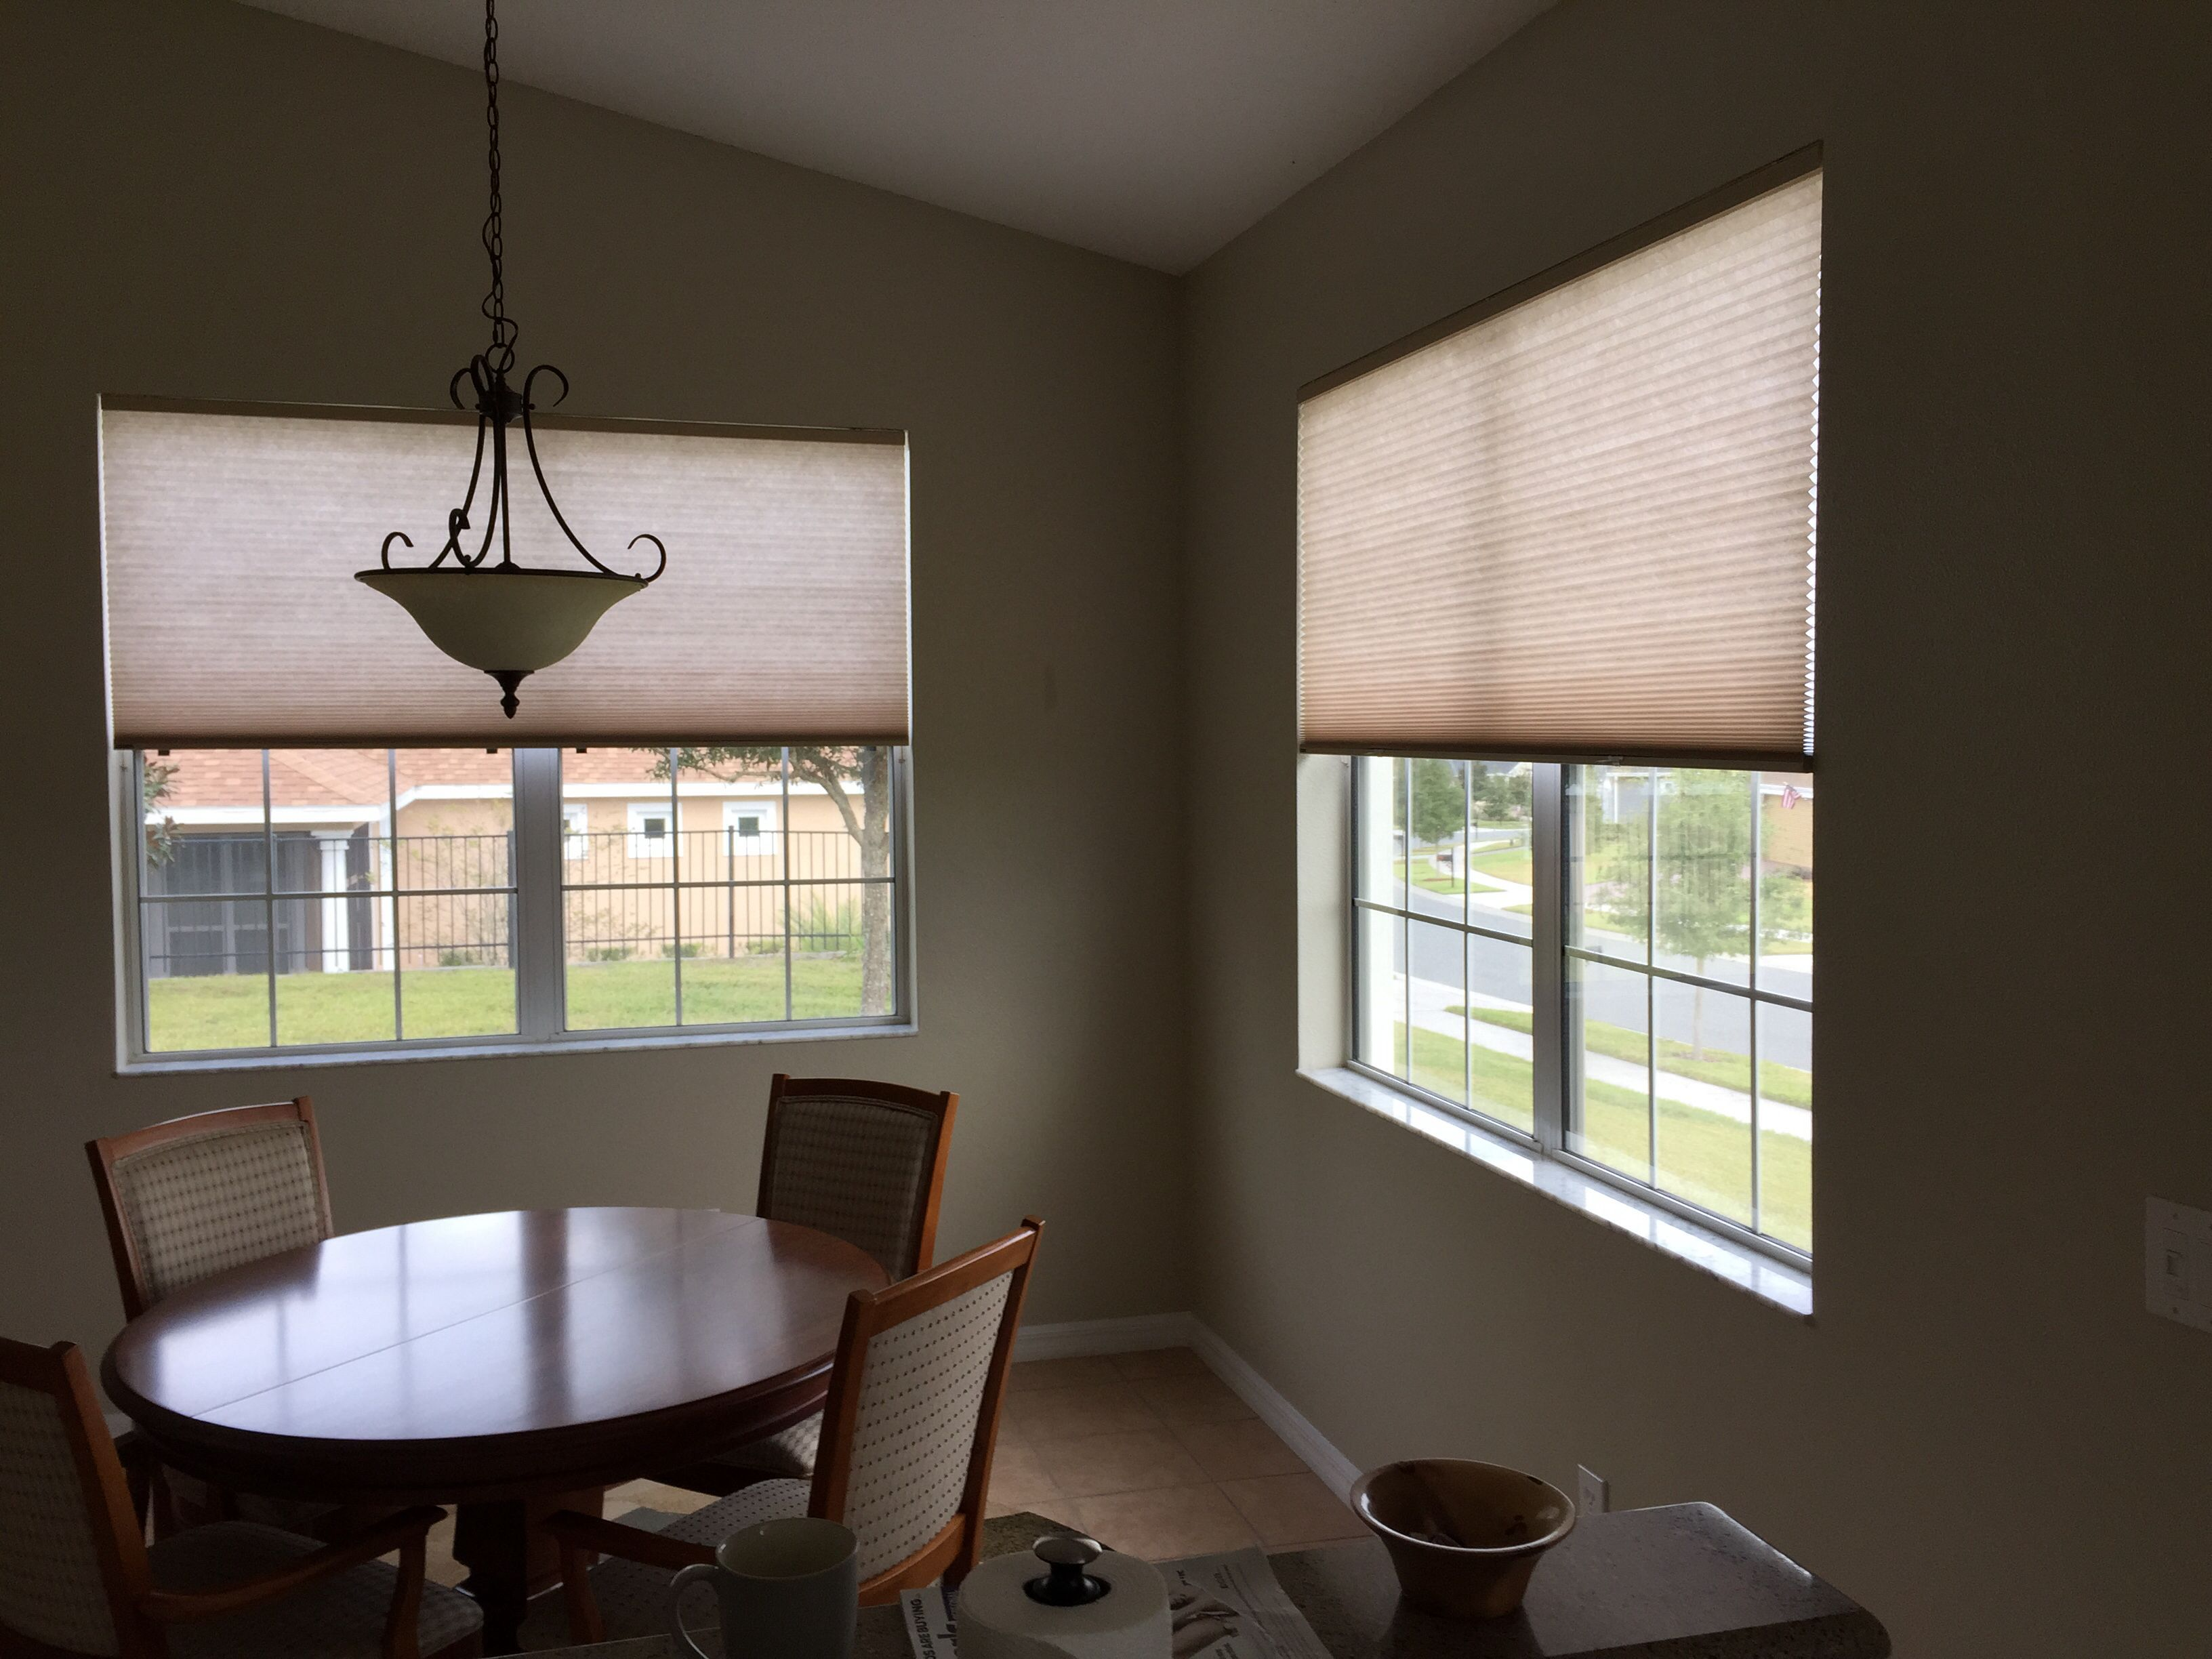 grey decorating center full bambooman blind shades with tremendous blinds windows england image fabrics naturalom and new ideas wall window blindsshades of in size kitchen decor